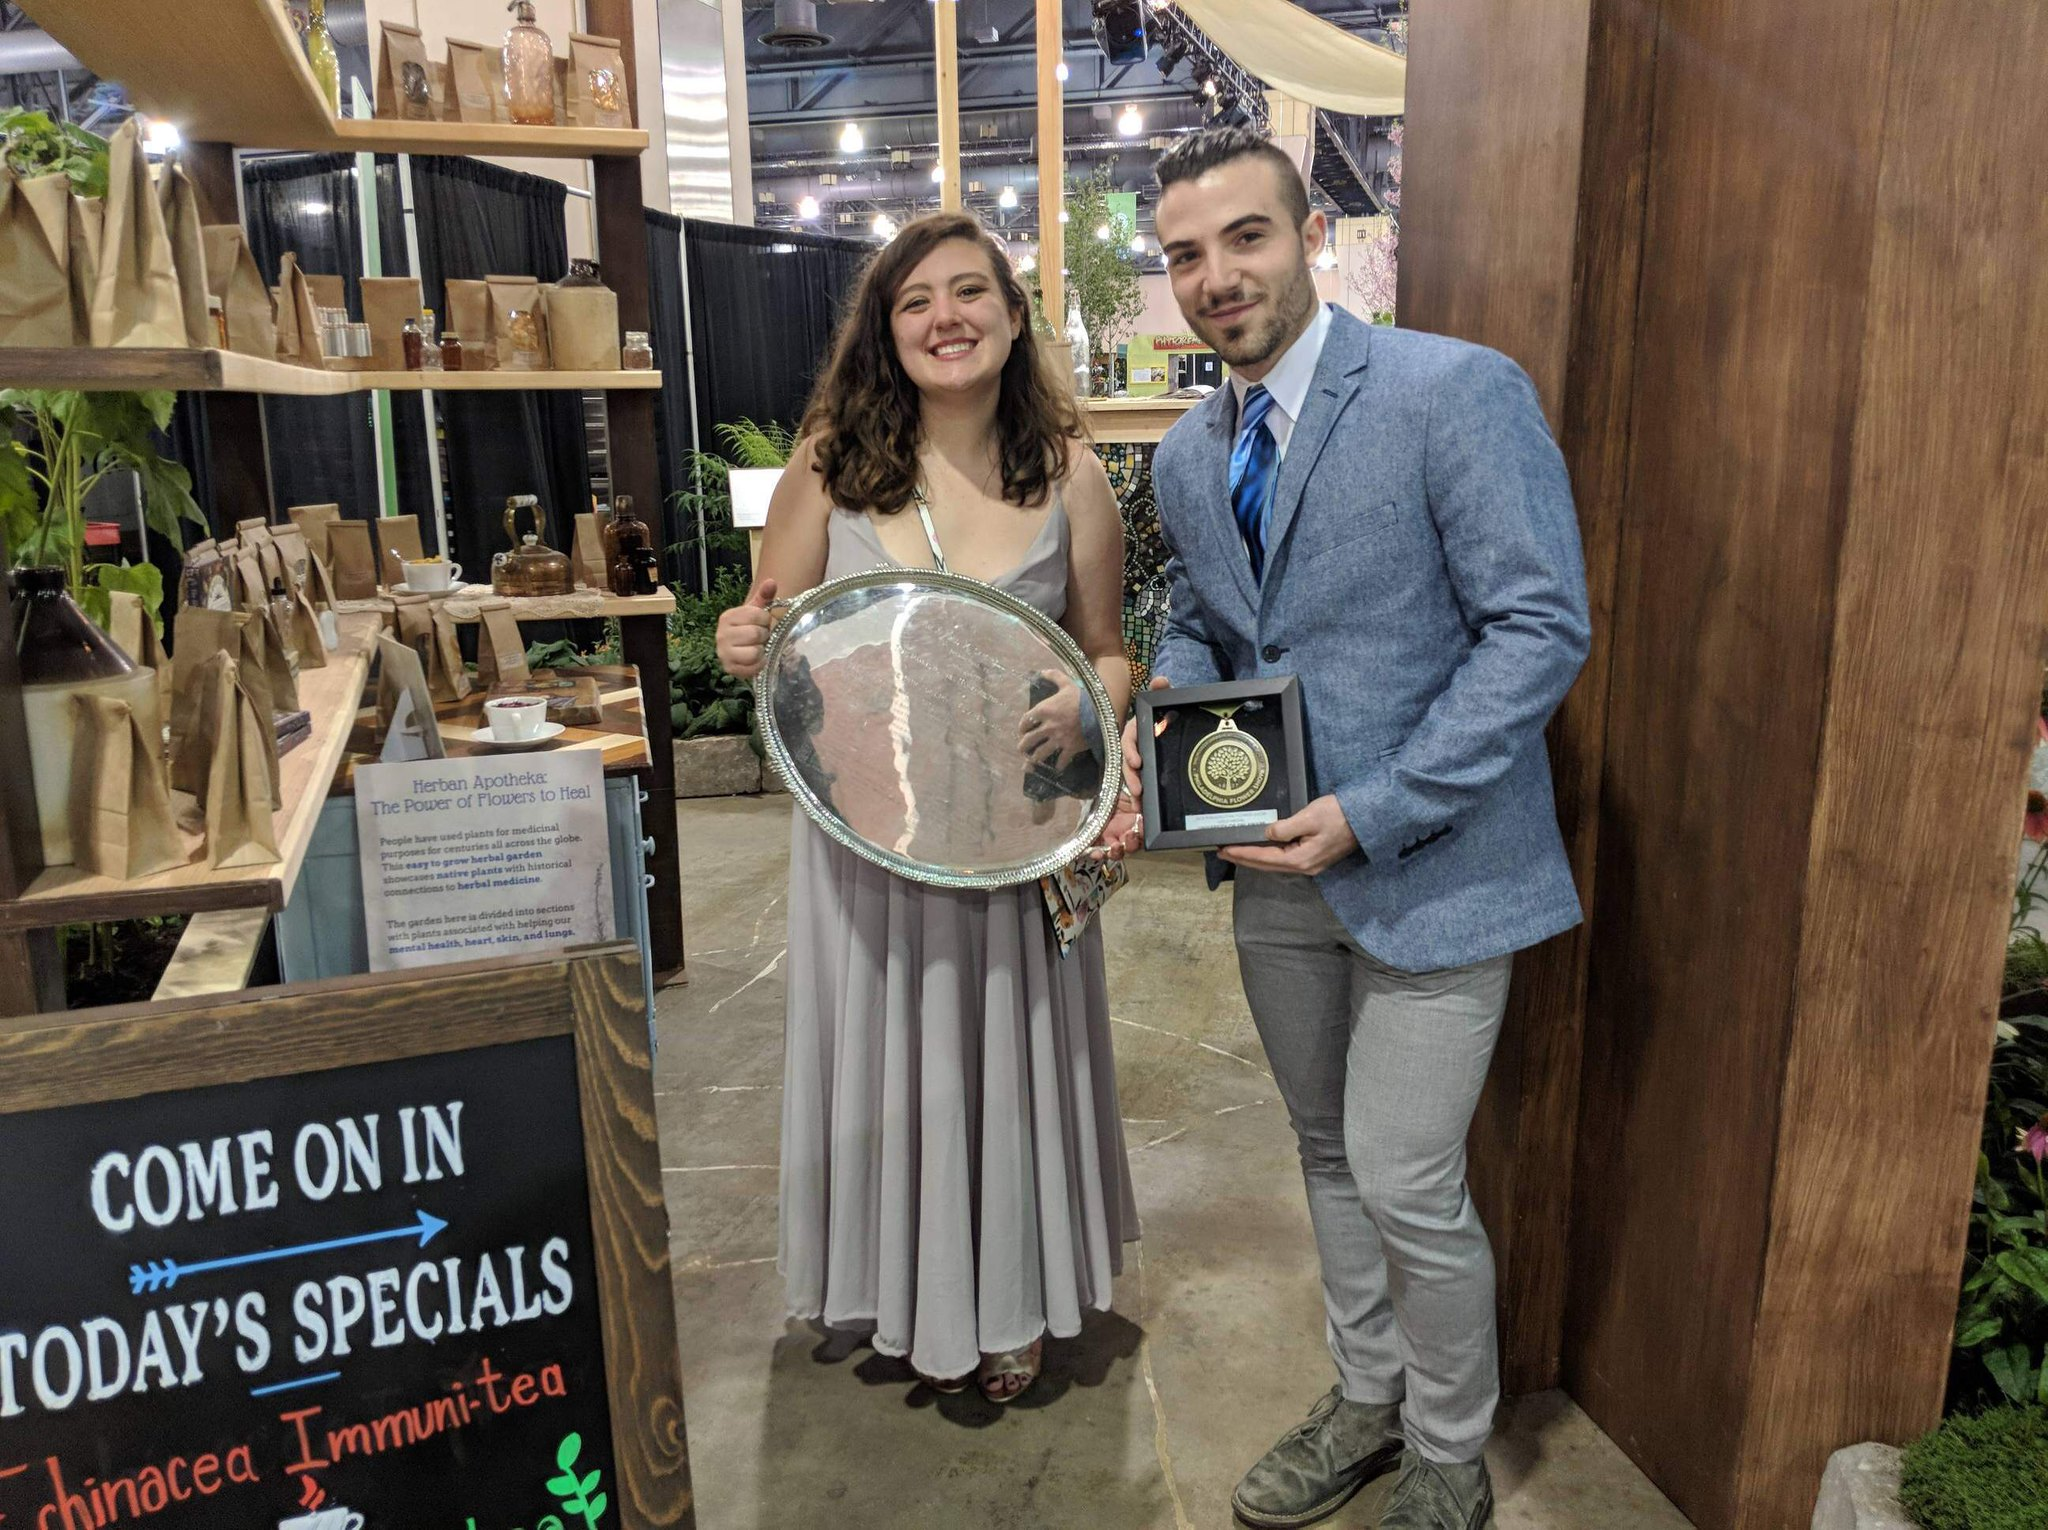 Design Articulture Club takes home gold at The Philadelphia Flower Show